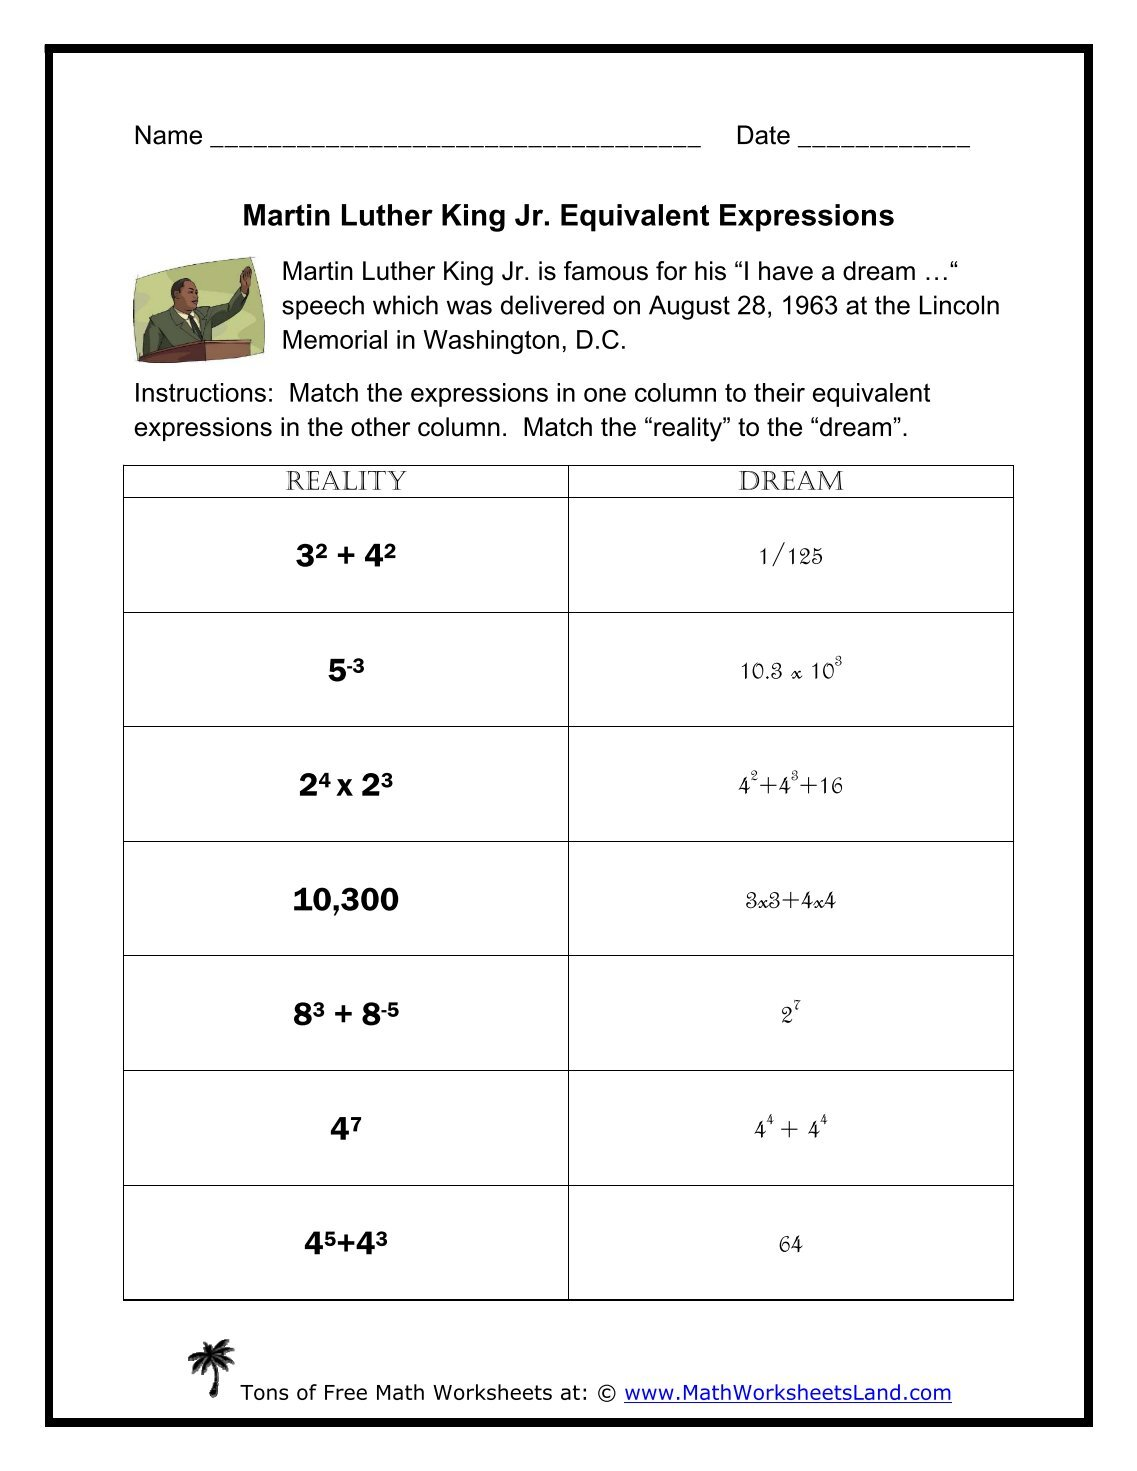 math worksheet : adult best math worksheet land inspirations myltio inspiring  : Math Worksheets Land